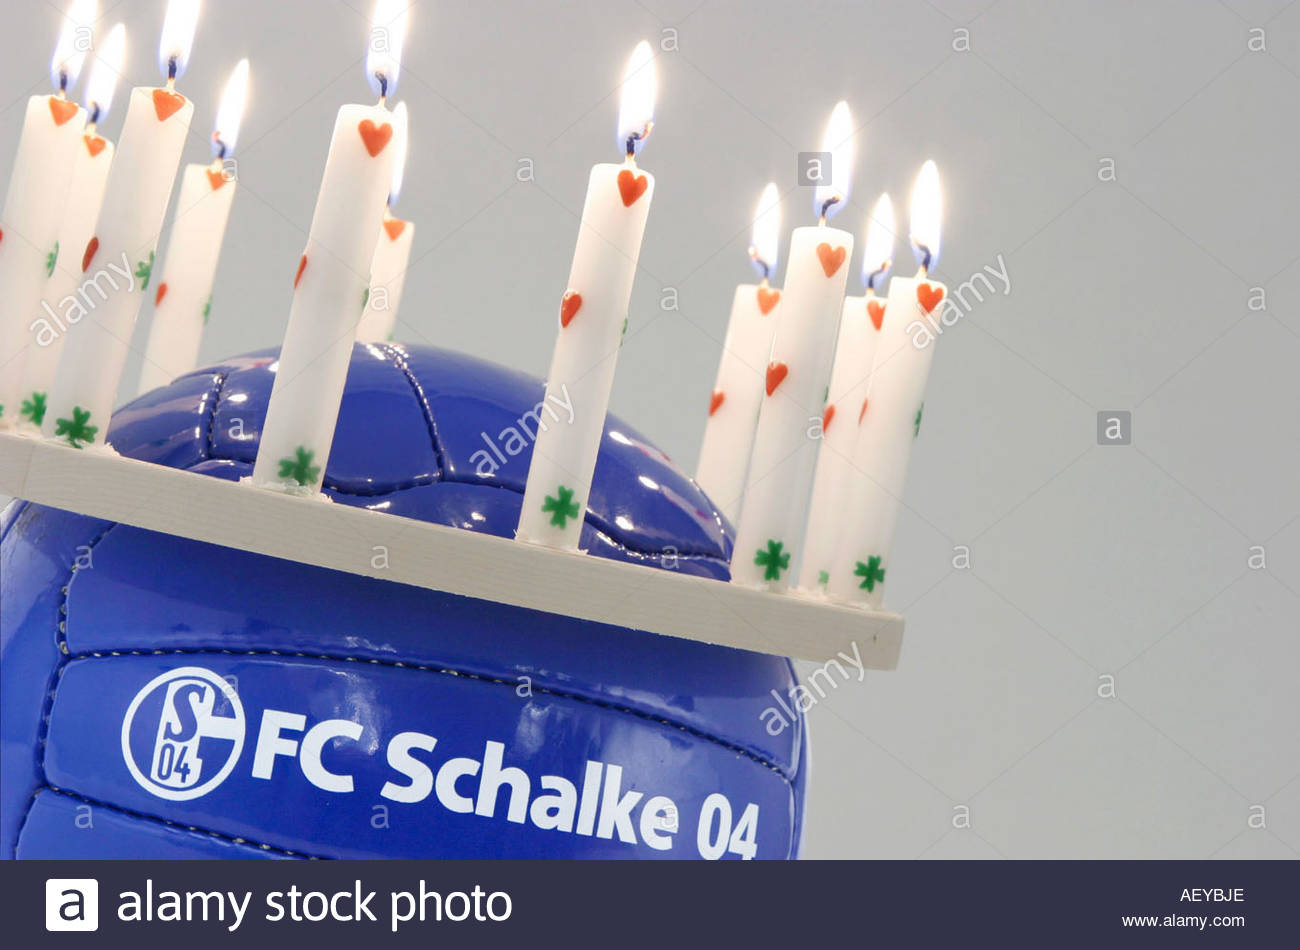 Schalke 04 adventskranz